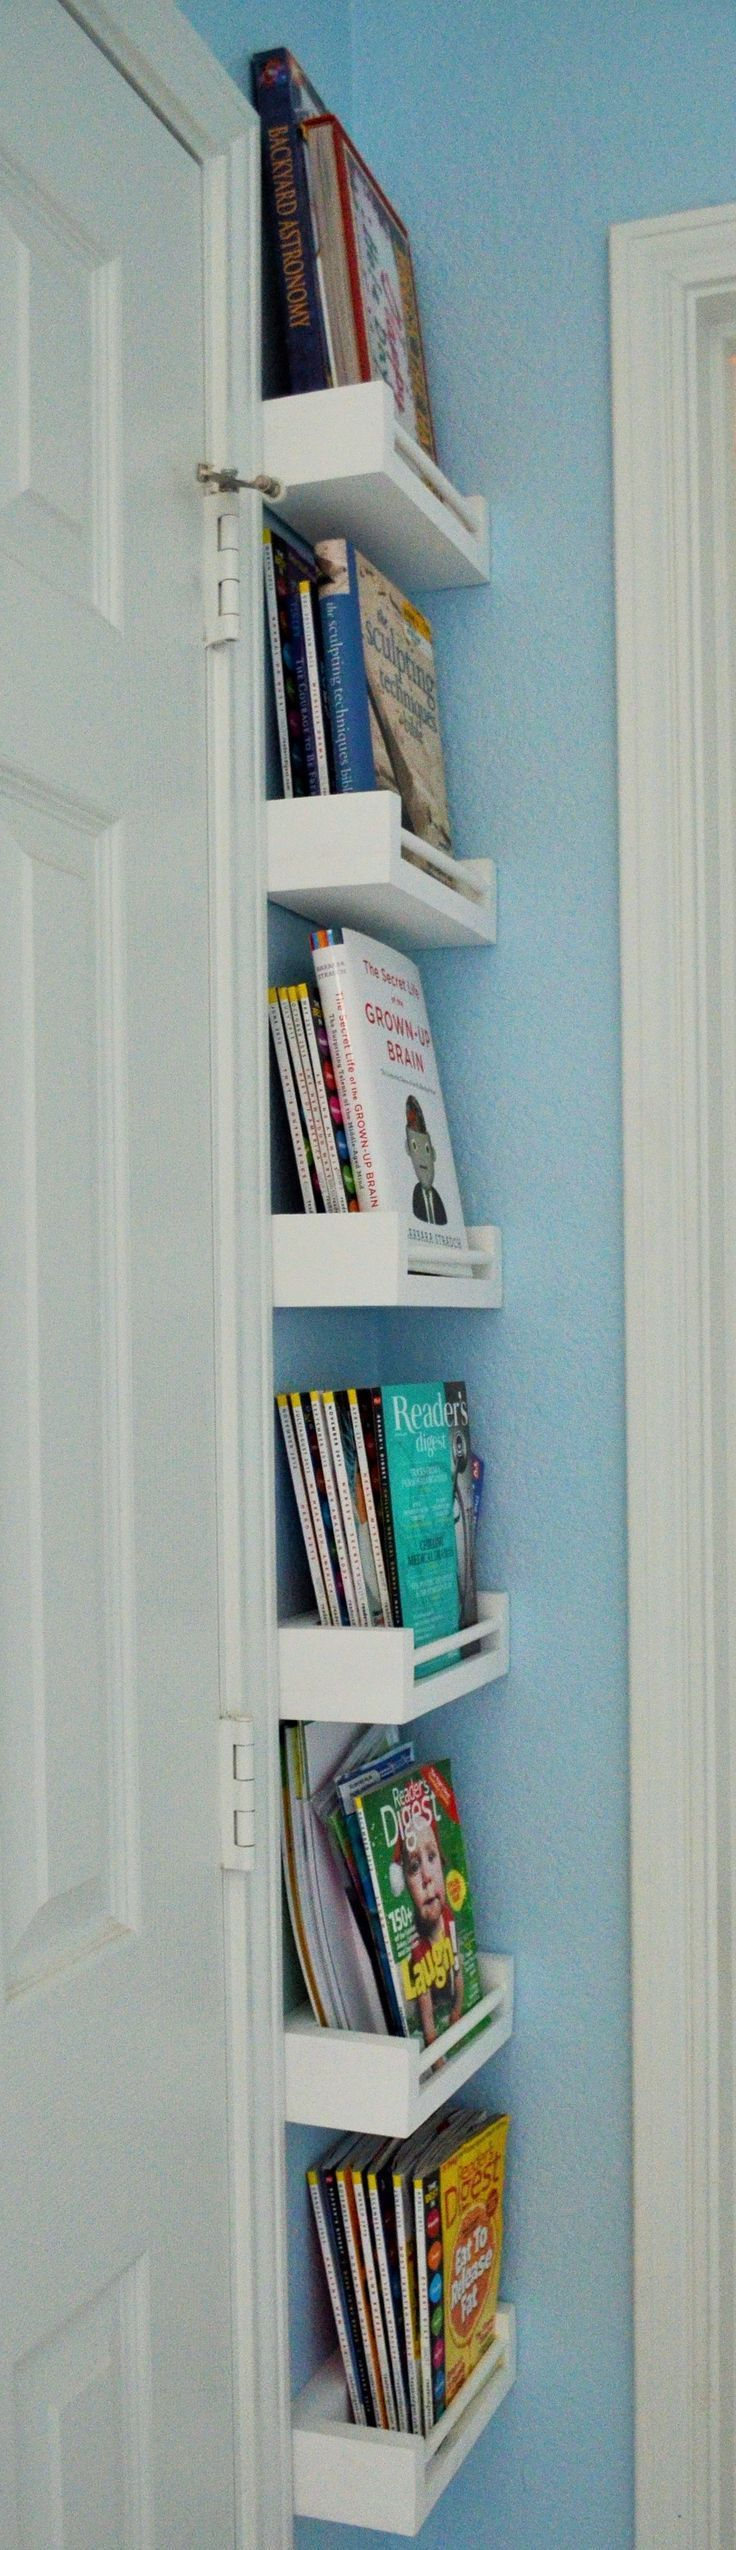 Best 25  Kids room organization ideas on Pinterest   Organize kids rooms   Organize girls rooms and Organize girls bedrooms. Best 25  Kids room organization ideas on Pinterest   Organize kids